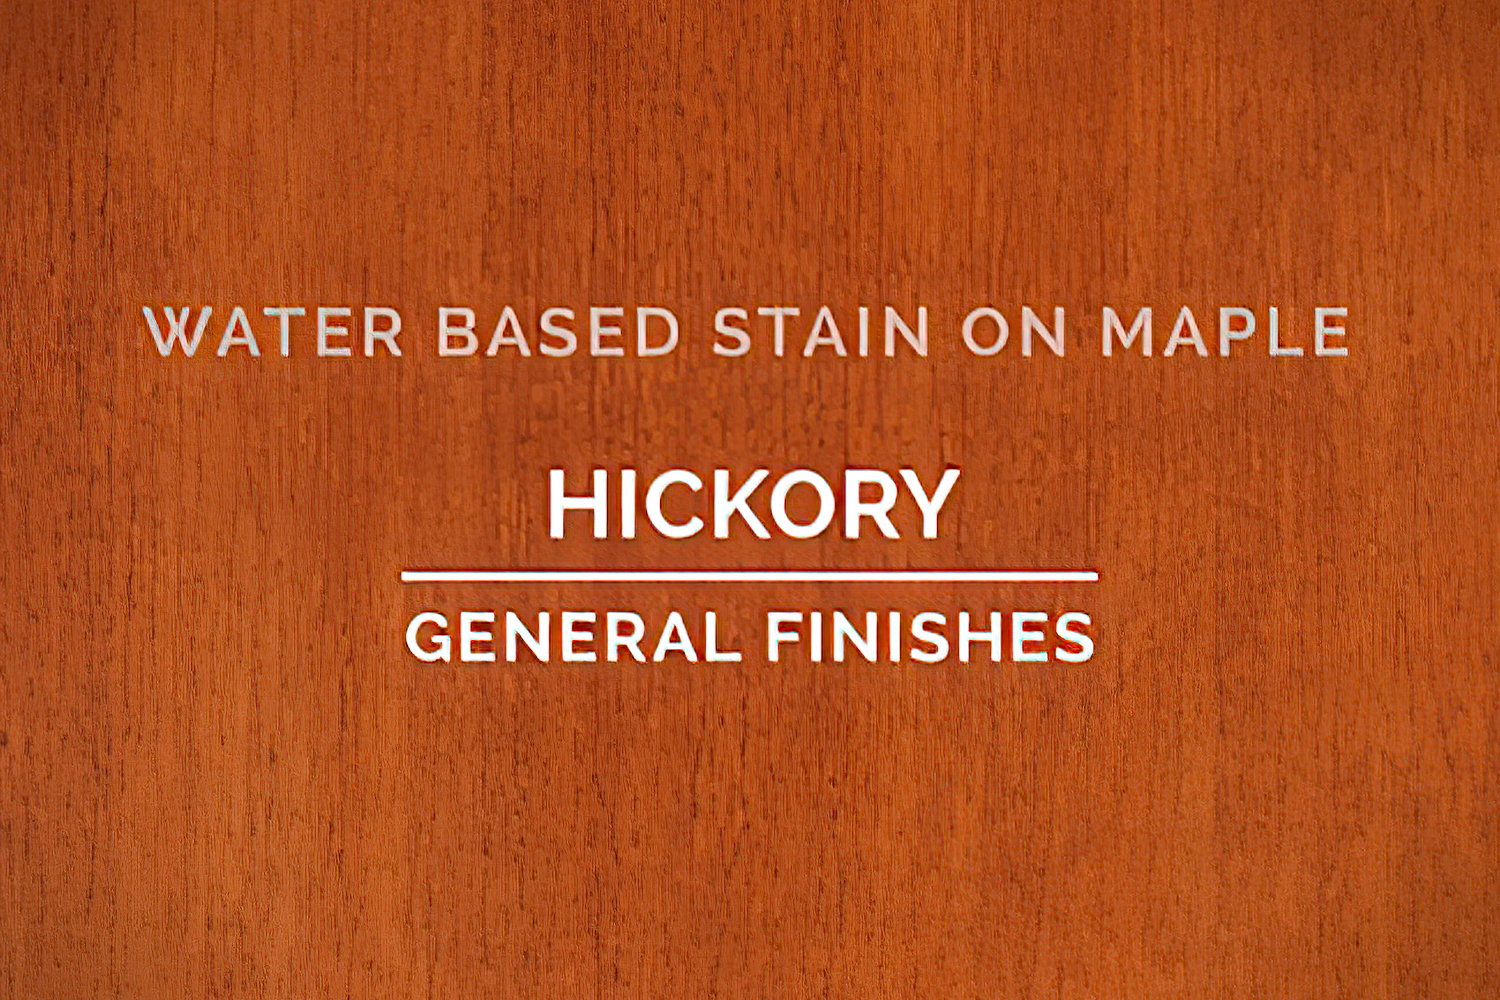 General Finishes Hickory Stain Water Based